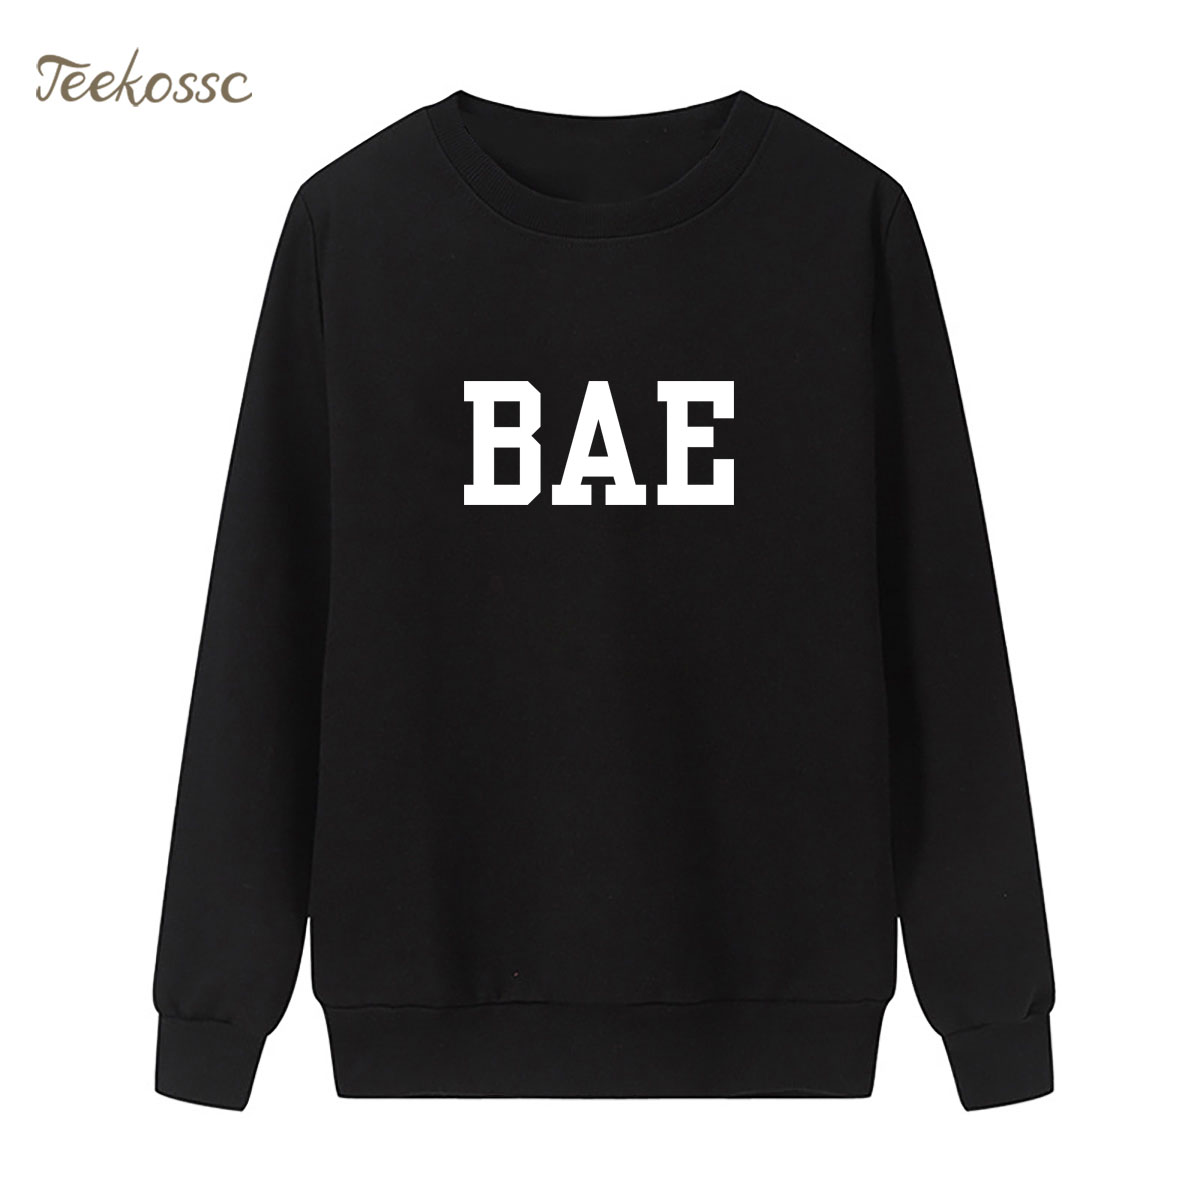 BAE Sweatshirt Letter Print Hoodie 2018 New Winter Autumn Women Lasdies Pullover Loose Fleece Streetwear Black White Sportswear